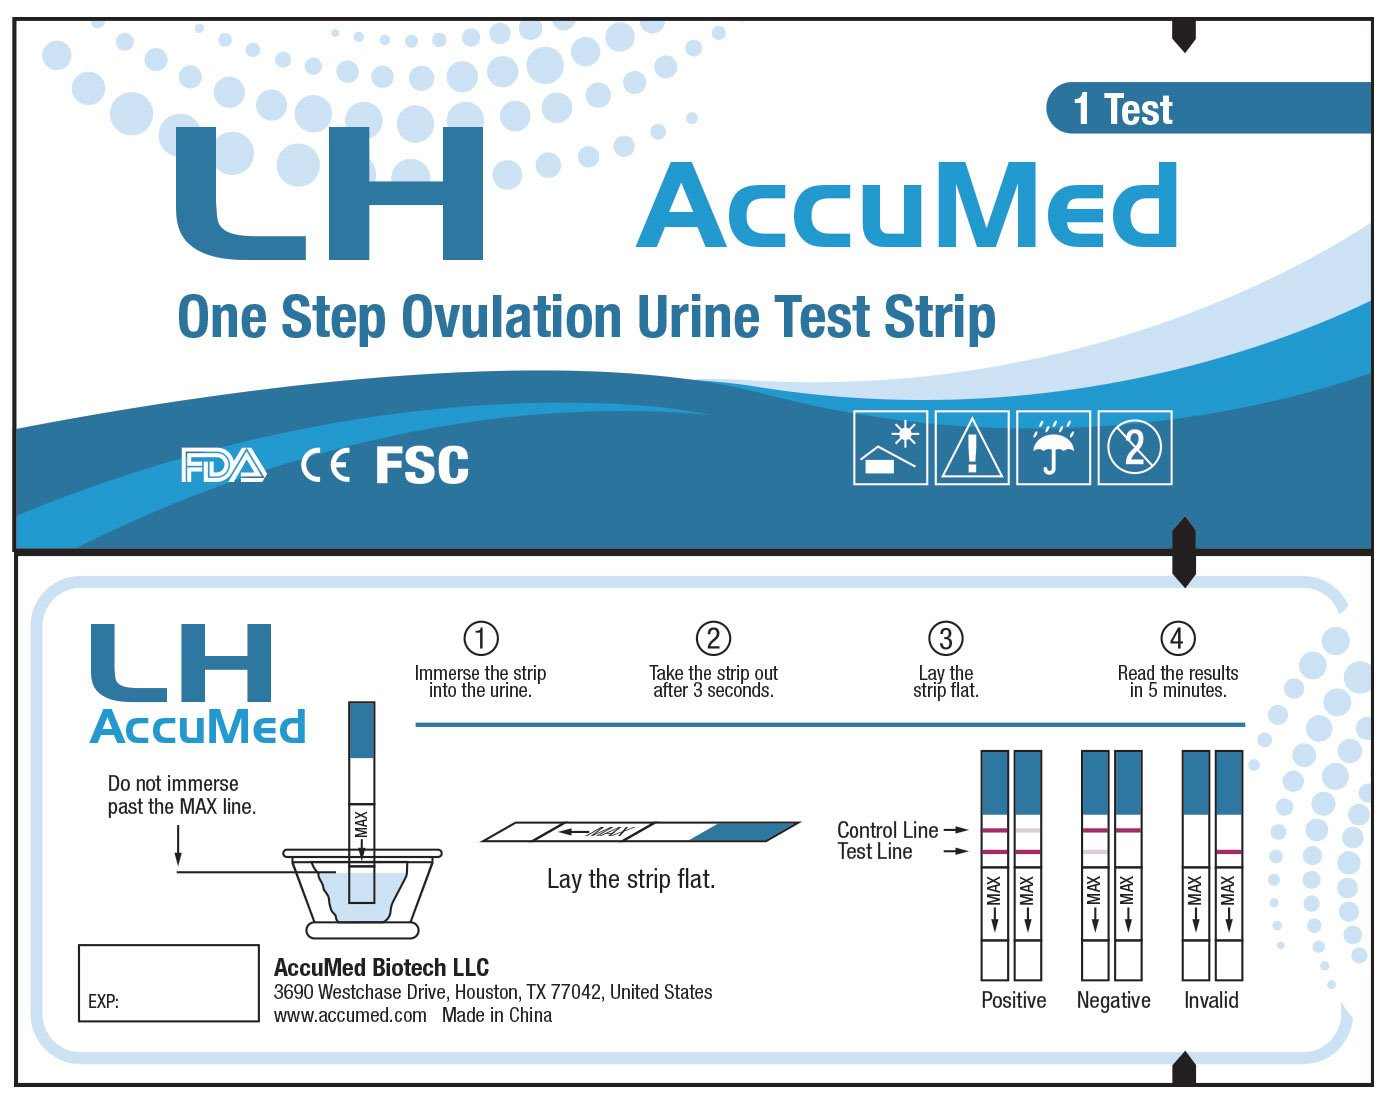 AccuMed Ovulation (LH) Test Strips Kit, Clear and Accurate Results, FDA Approved and Over 99% Accurate, 100 count